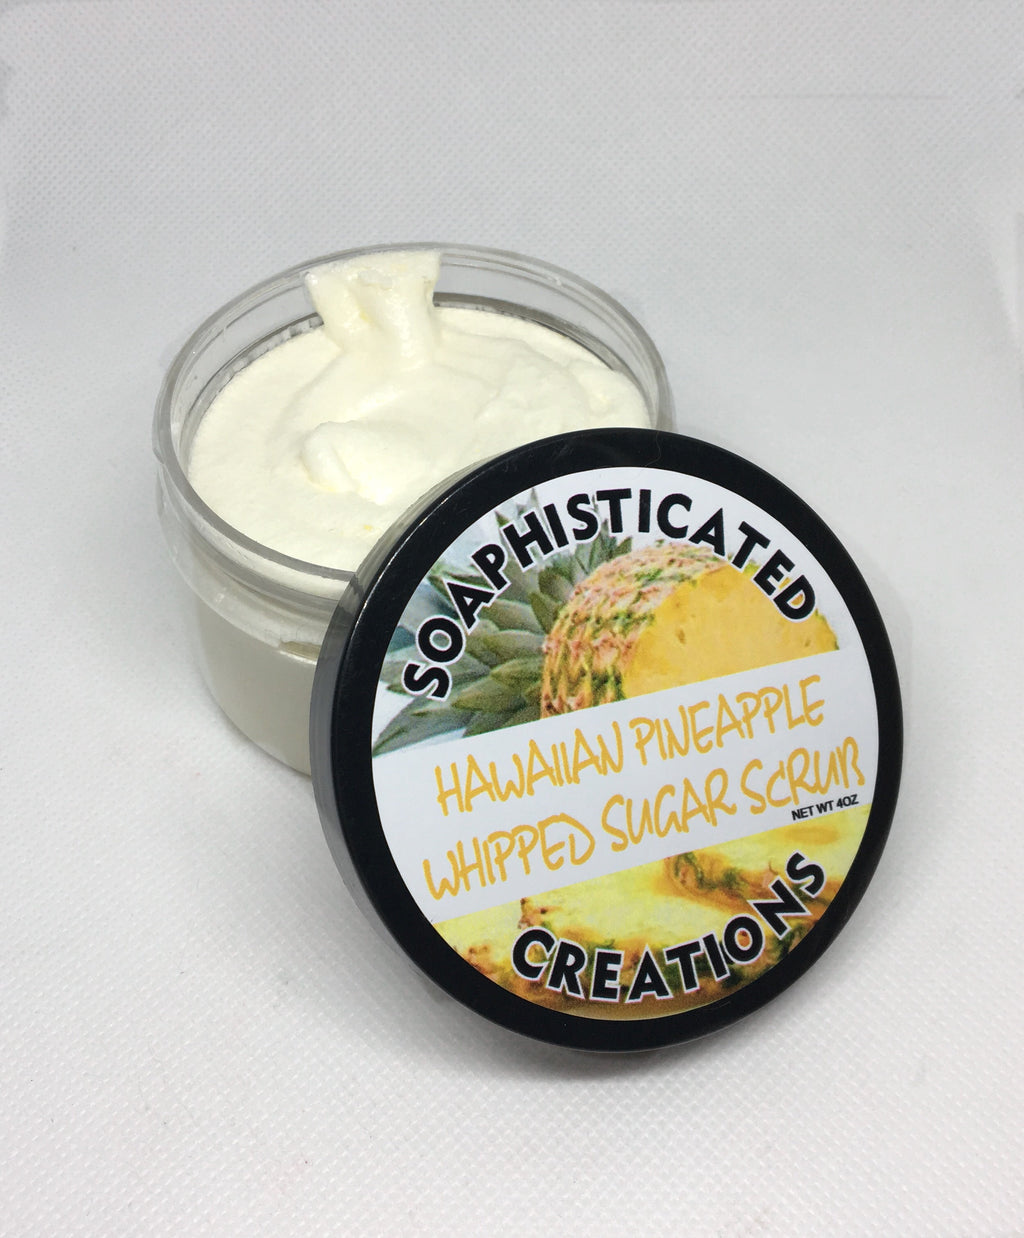 Hawaiian Pineapple Whipped Sugar Scrub